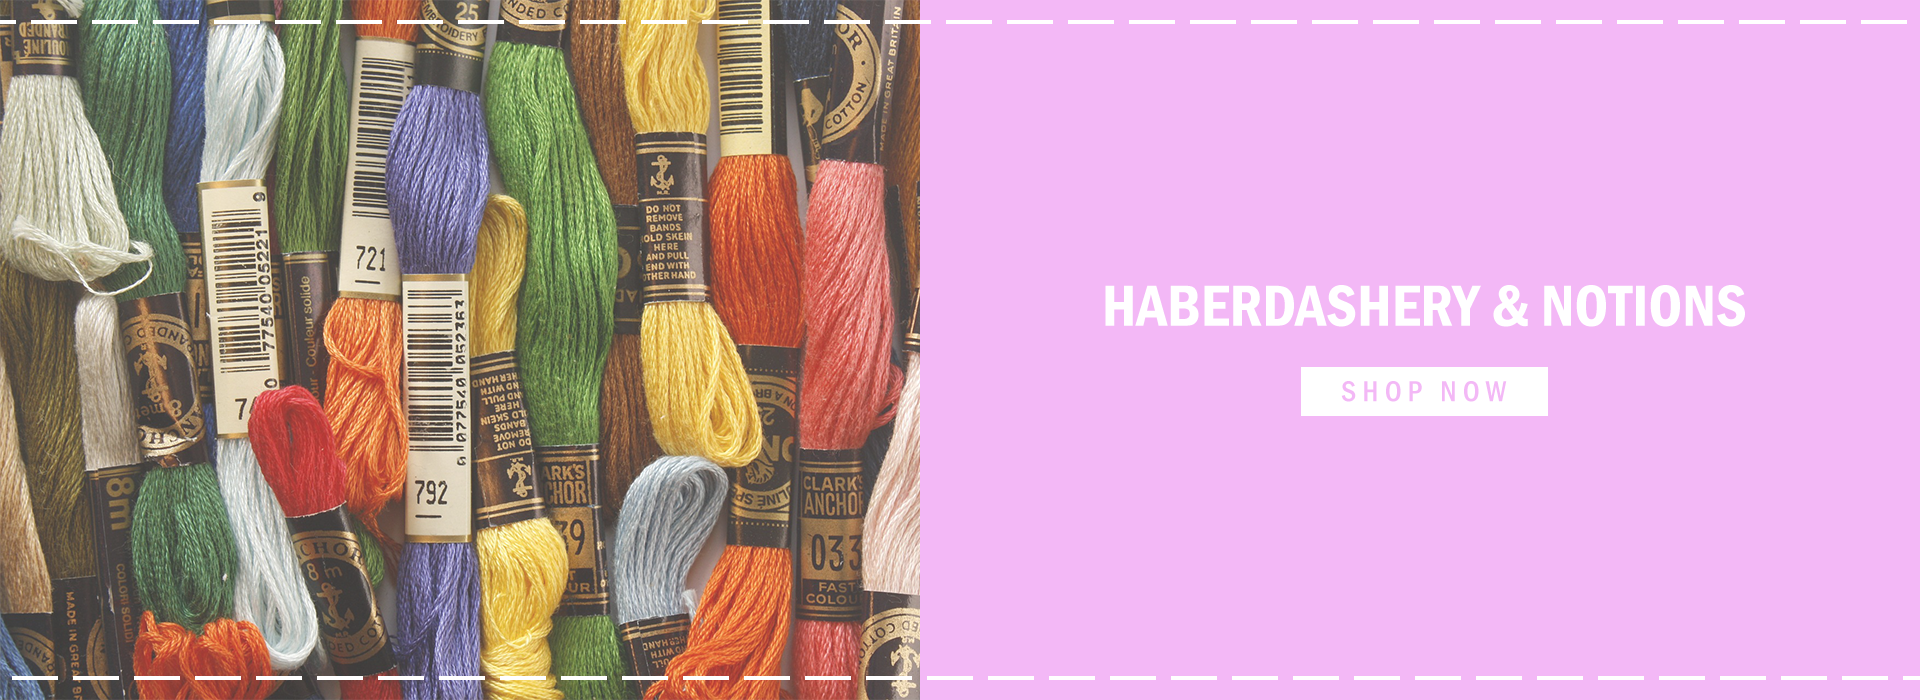 Click here to view our Haberdashery & Notions selection